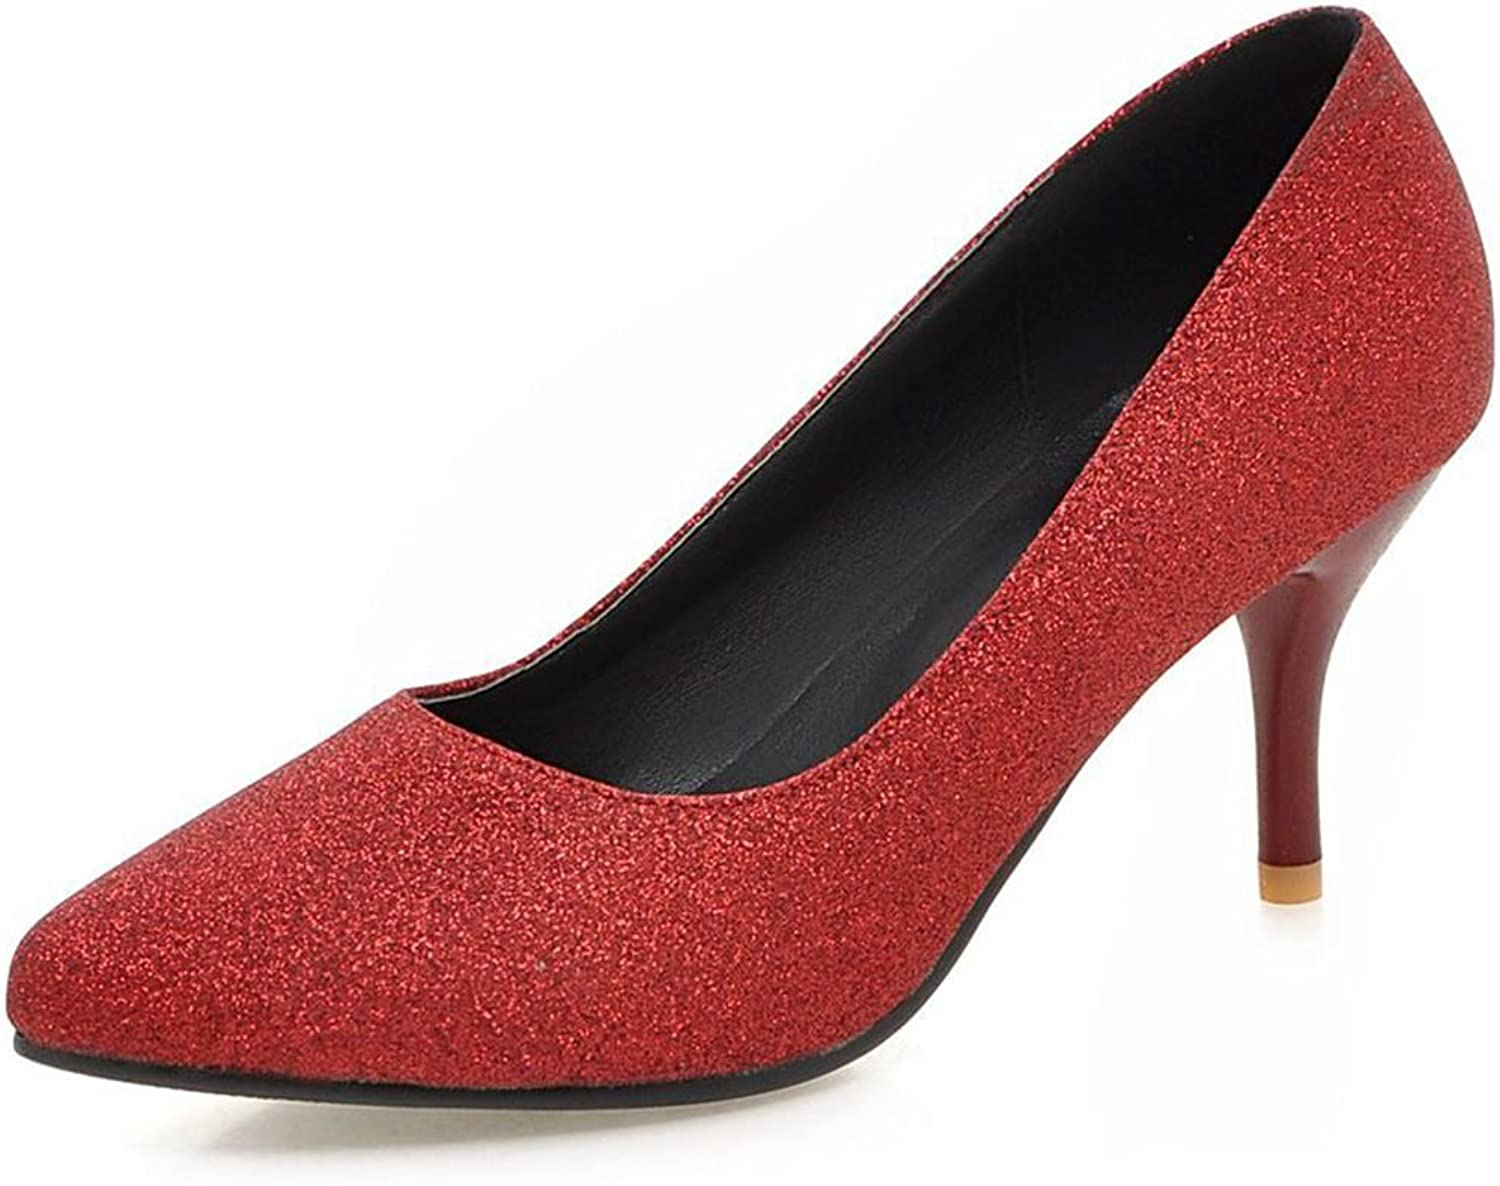 Kaloosh Women's Sexy Pointed Toe Glitter Fabric Thin Heels Party Court shoes Prom Pumps